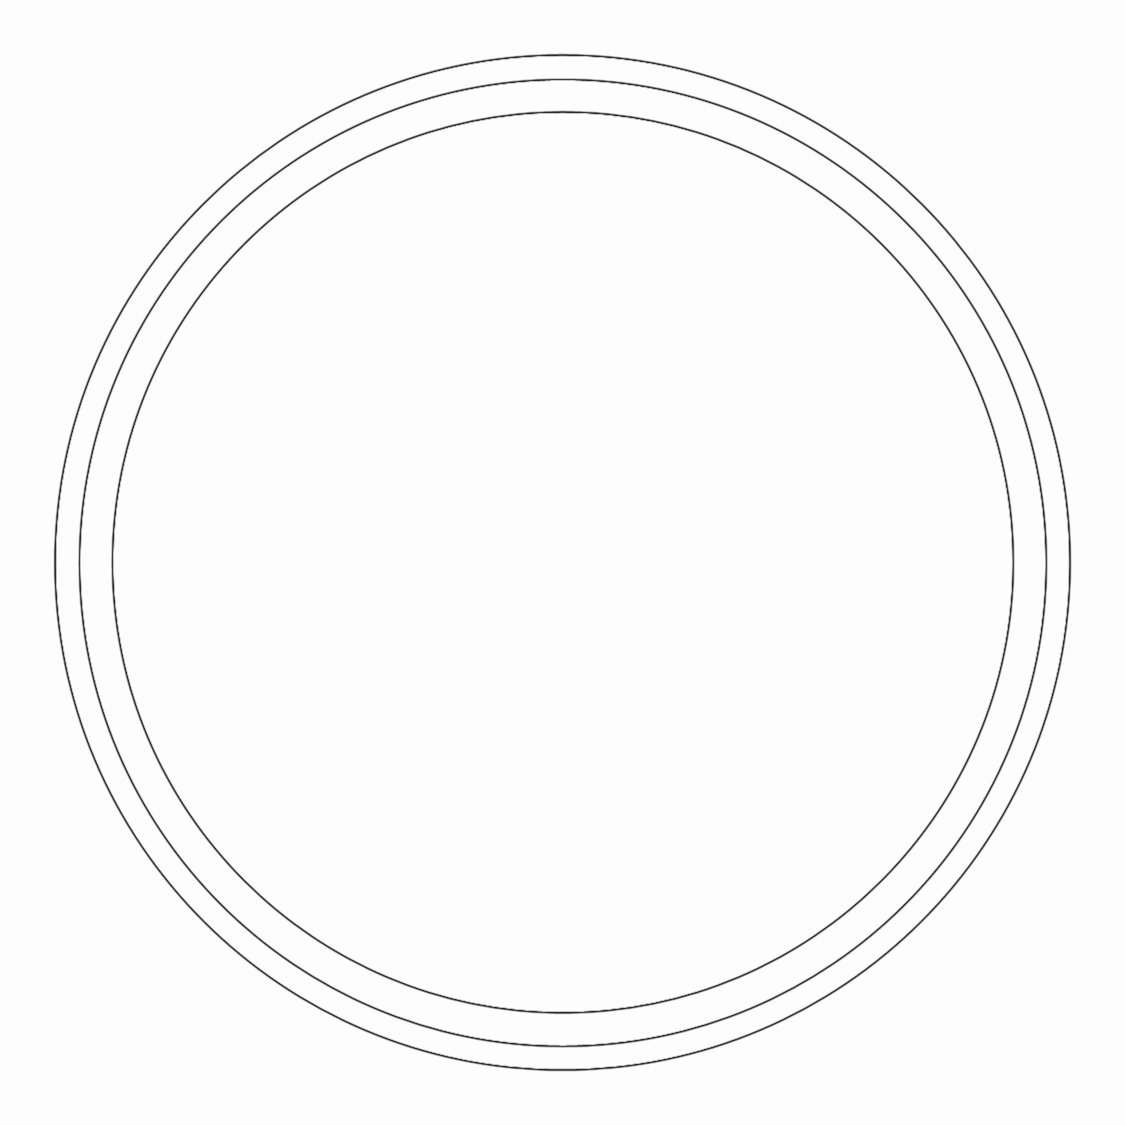 Three Inch Circle Template Inspirational button Templates